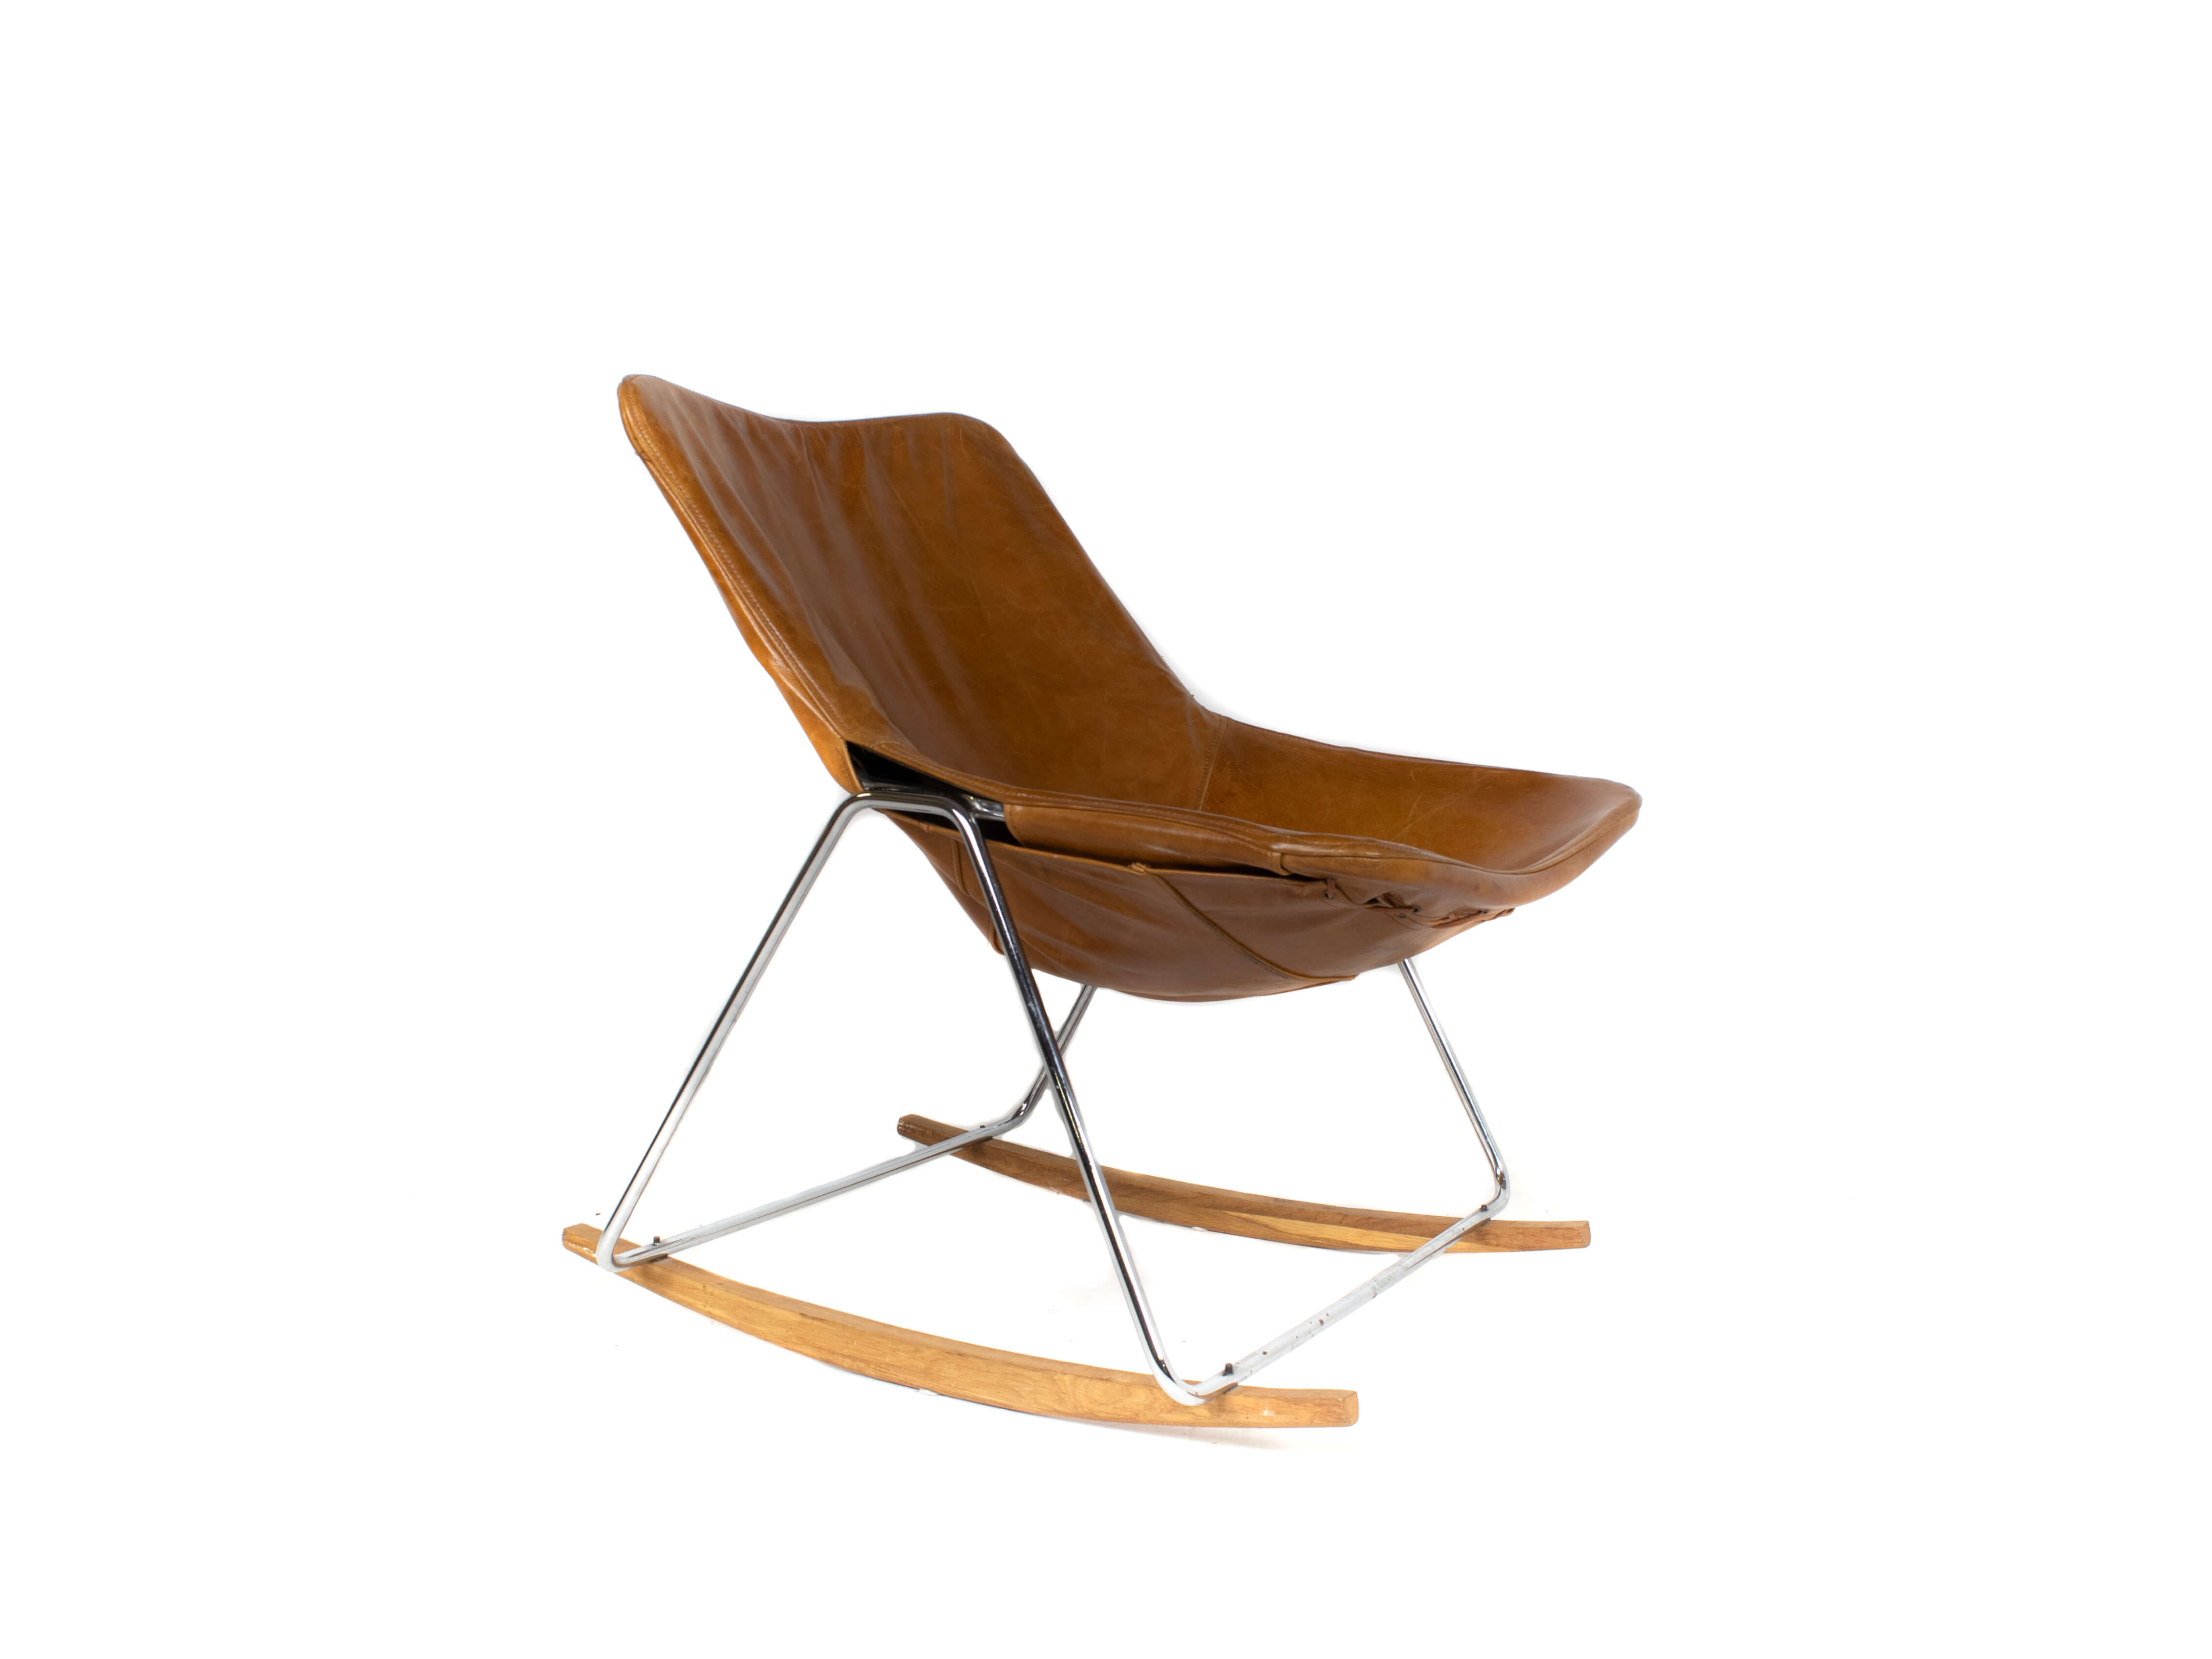 G1 Leather Rocking Chair by Pierre Guariche, France